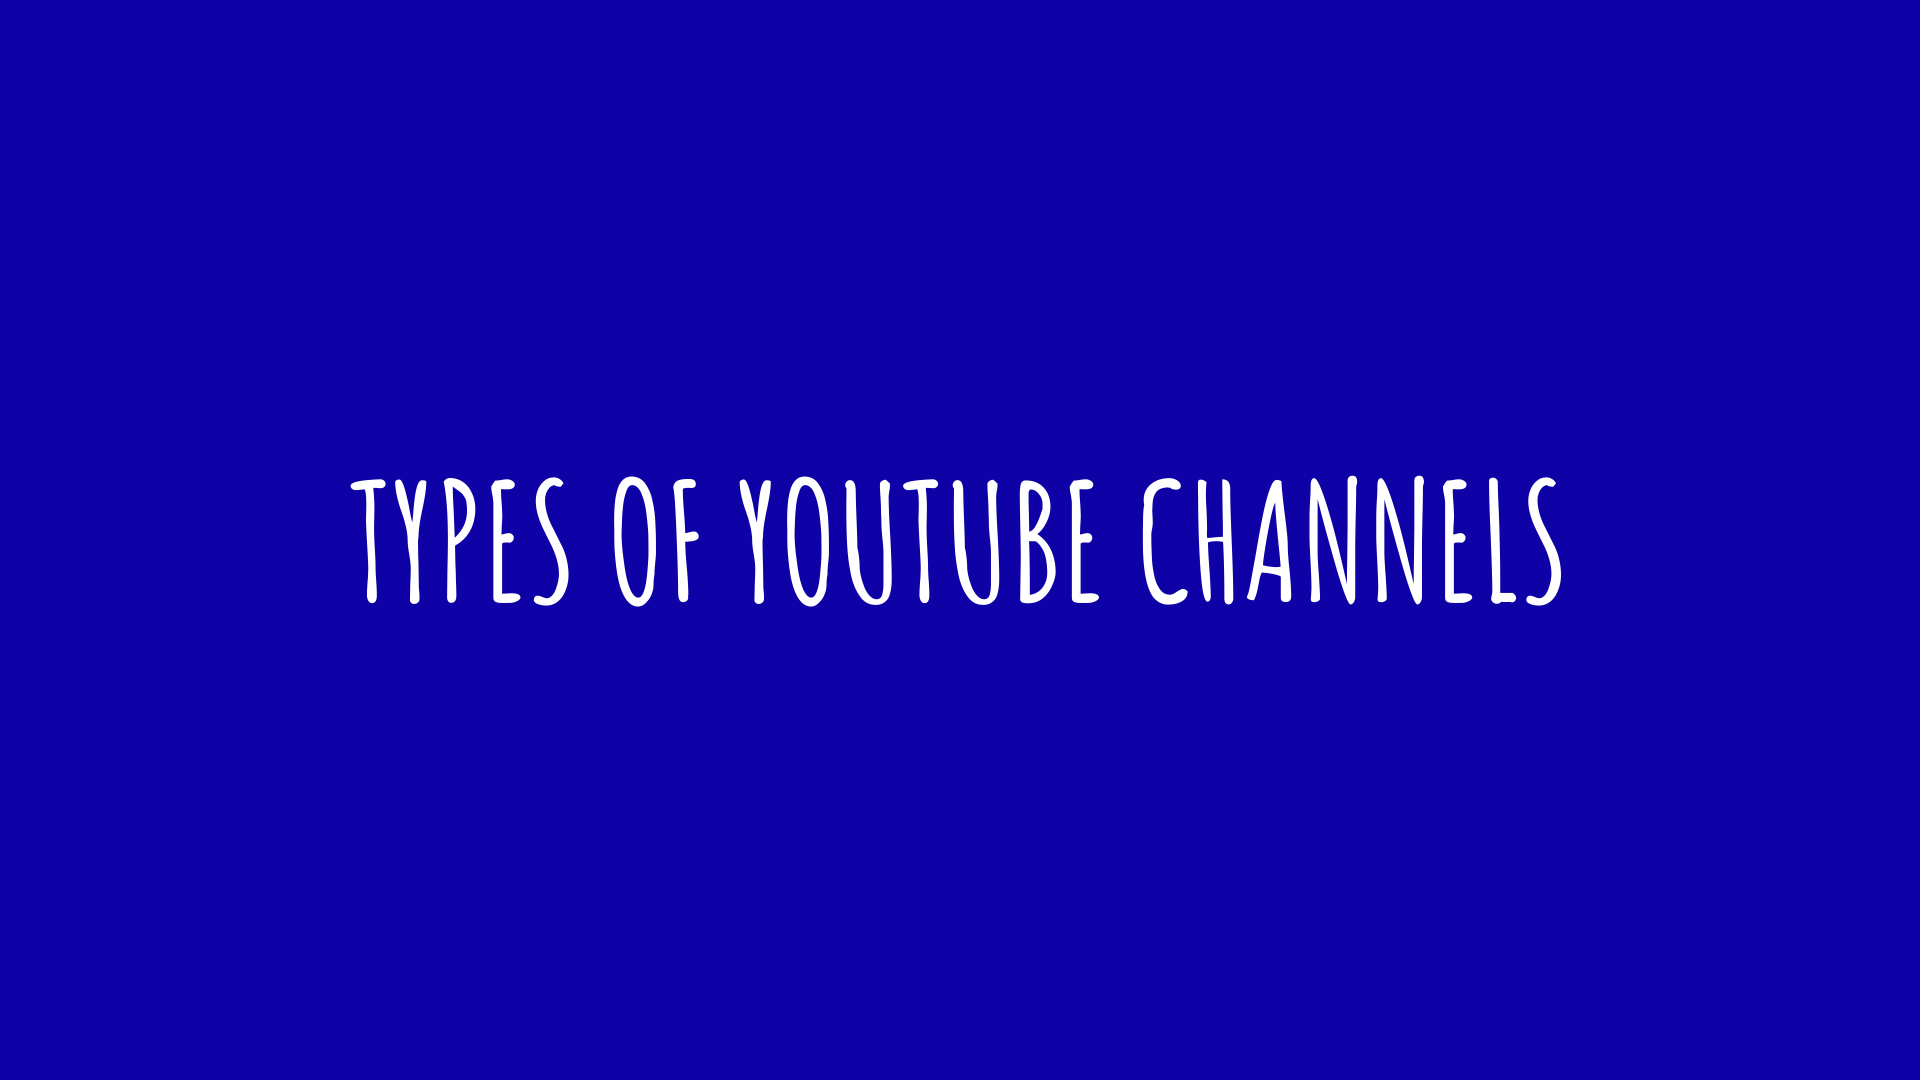 Types of YouTube Channels